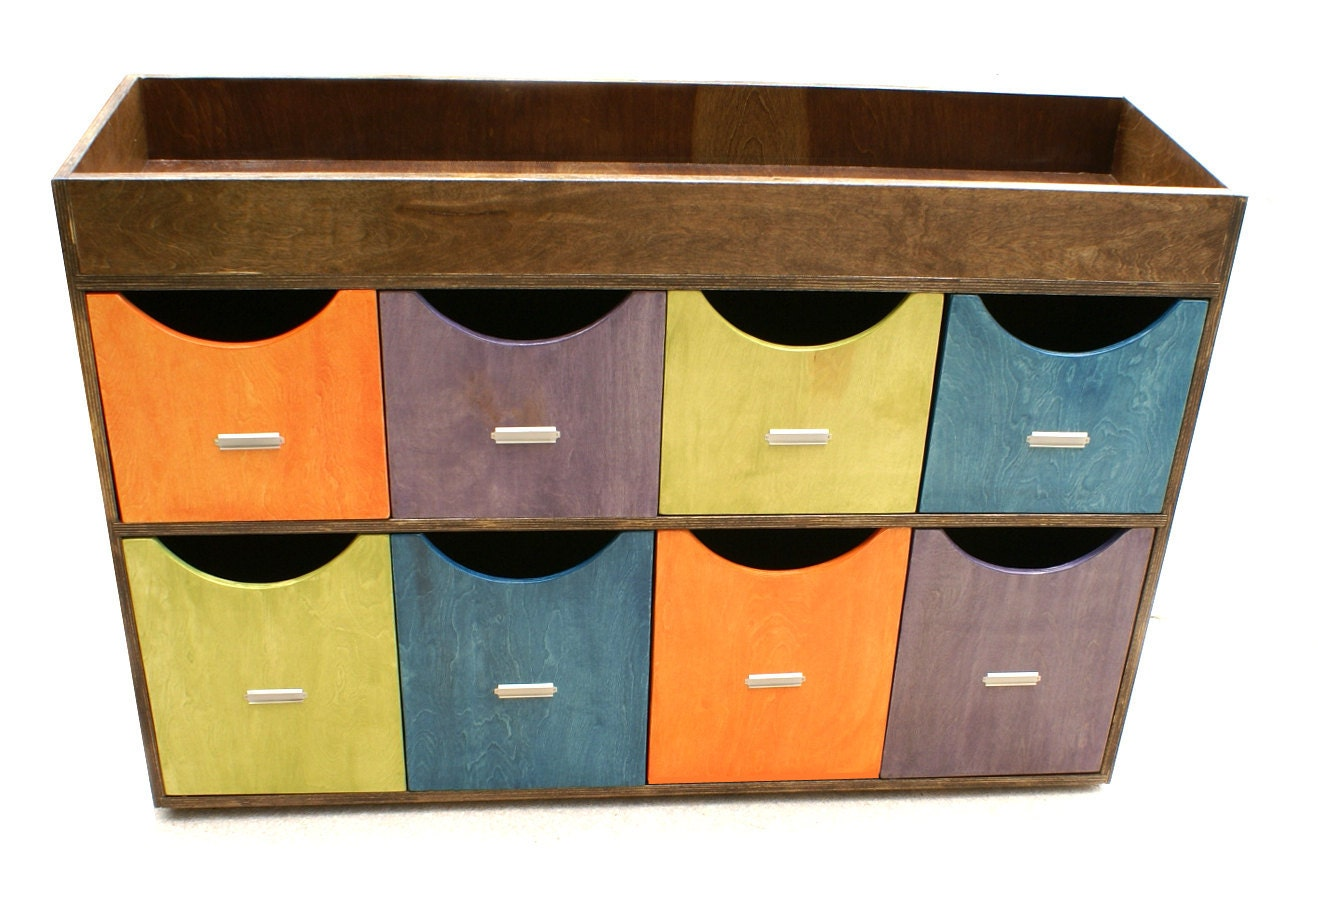 Modern Child Storage Unit With Bins